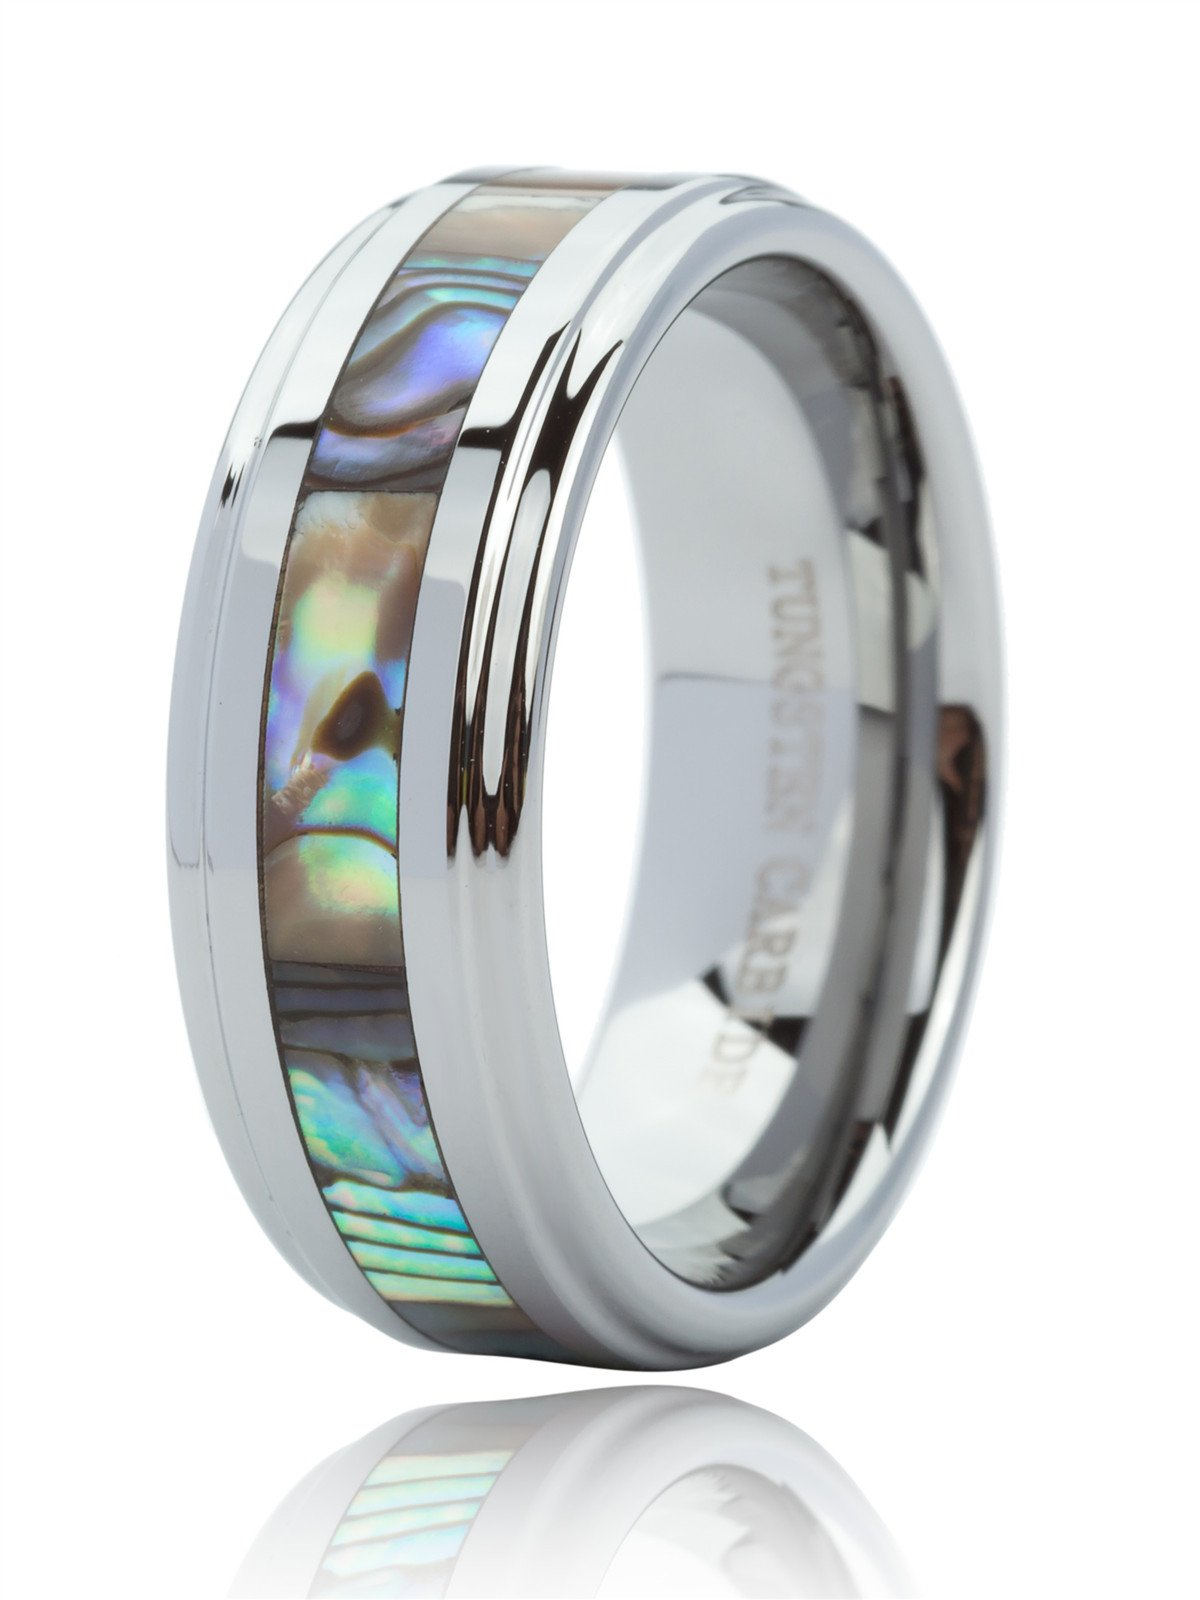 Just Lsy 8mm Tungsten Ring for Men & Women Engagement Wedding Band Abalone Shell Inlay Polished Finish Step Edge Comfort Fit Size 8.5 Lsy-015